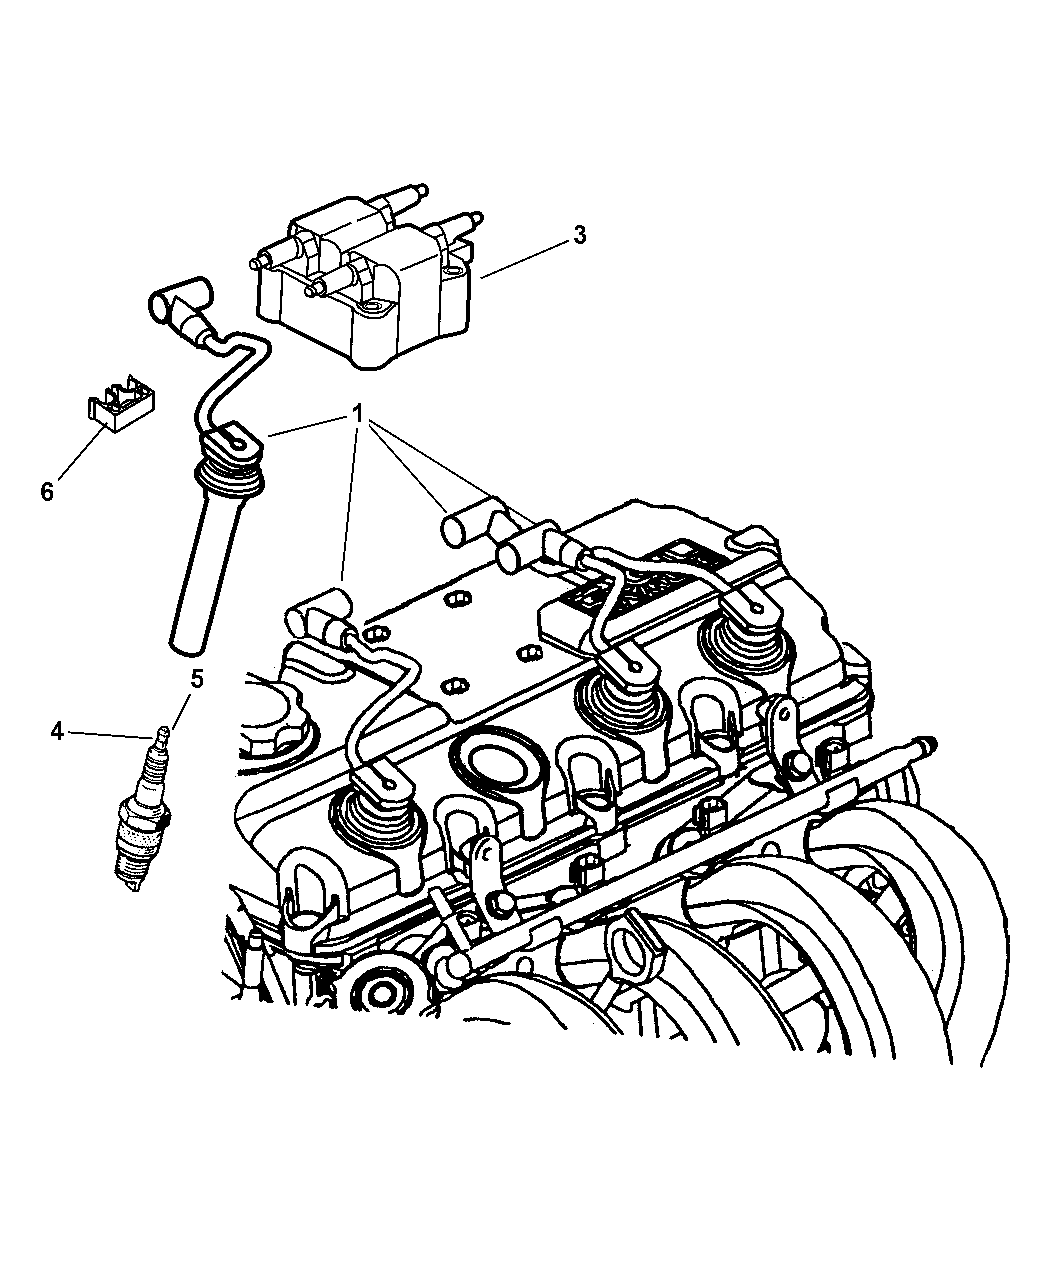 Dodge Neon Spark Plugs Ignition Coil And Wires